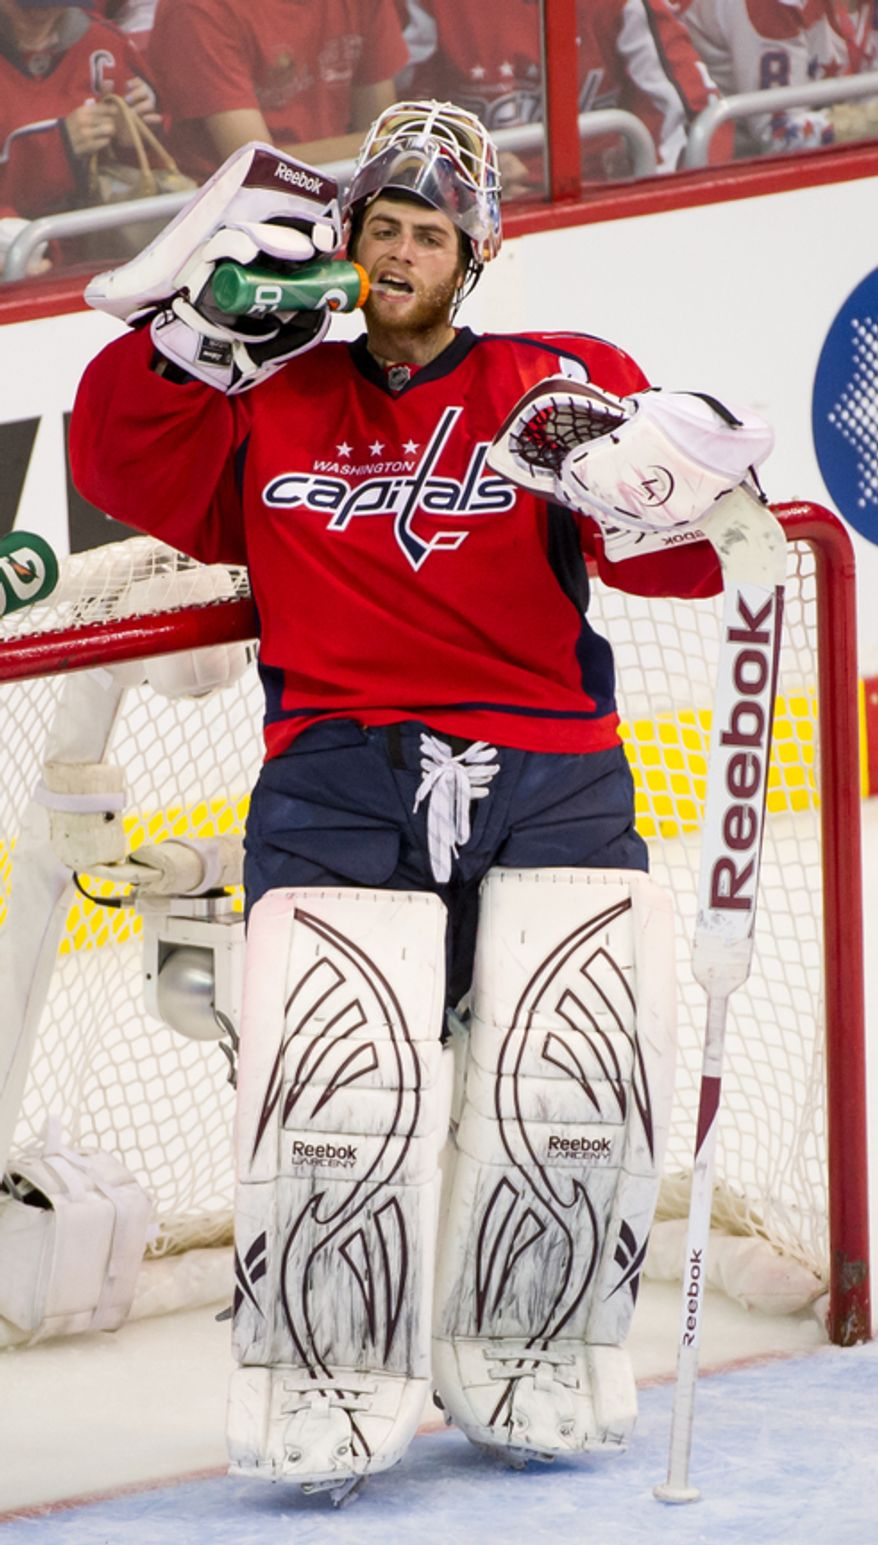 Washington Capitals goalie Braden Holtby (70) drinks water during a break in play in the third period as the Washington Capitals take on the New York Rangers in game six of the NHL eastern conference playoffs semifinals at the Verizon Center, Washington, D.C., Wednesday, May 9, 2012 (Andrew Harnik/The Washington Times)